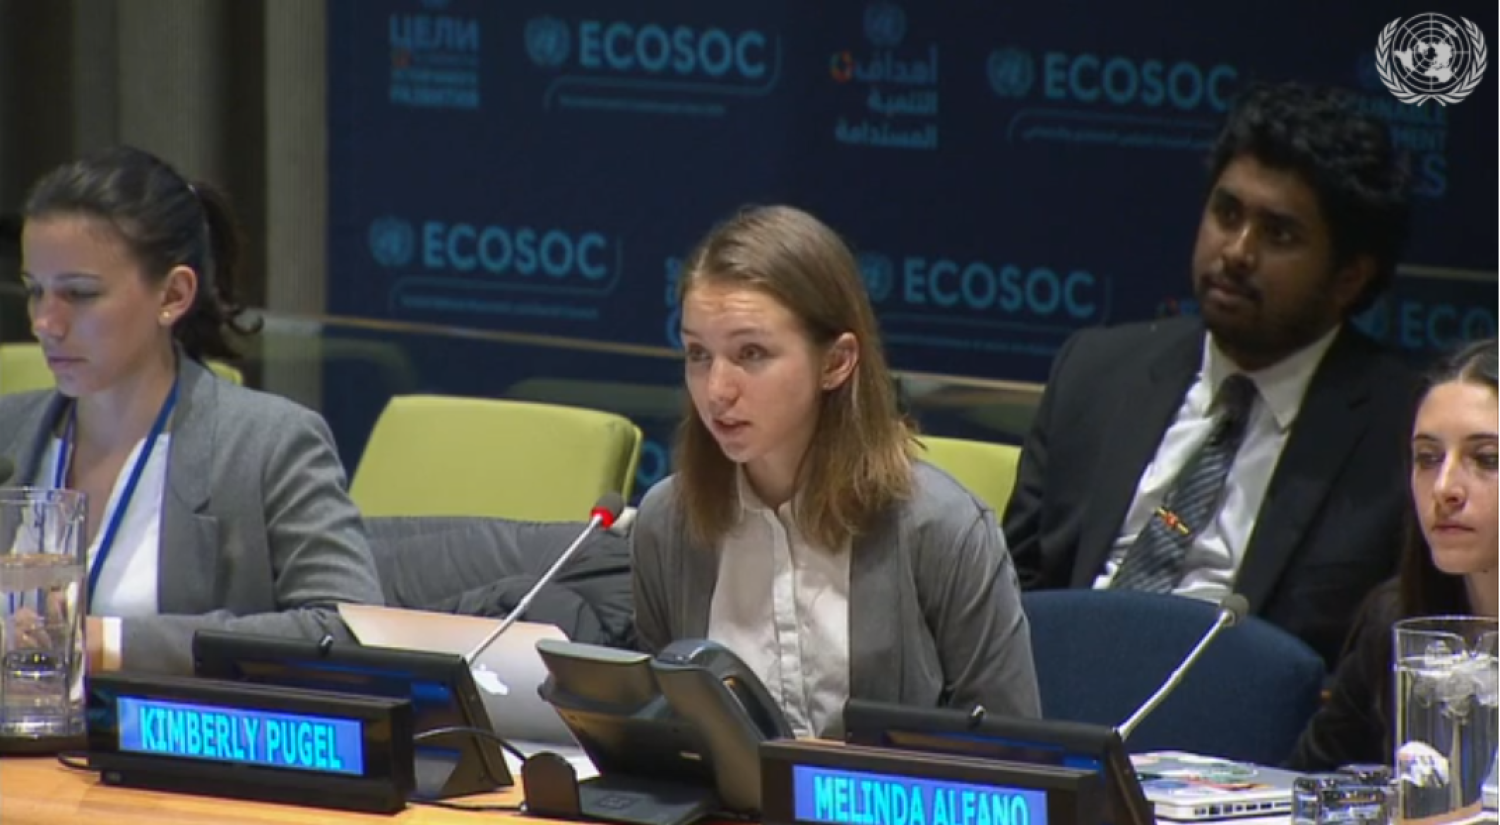 Kimmy Pugel presents at a U.N. meeting in January.